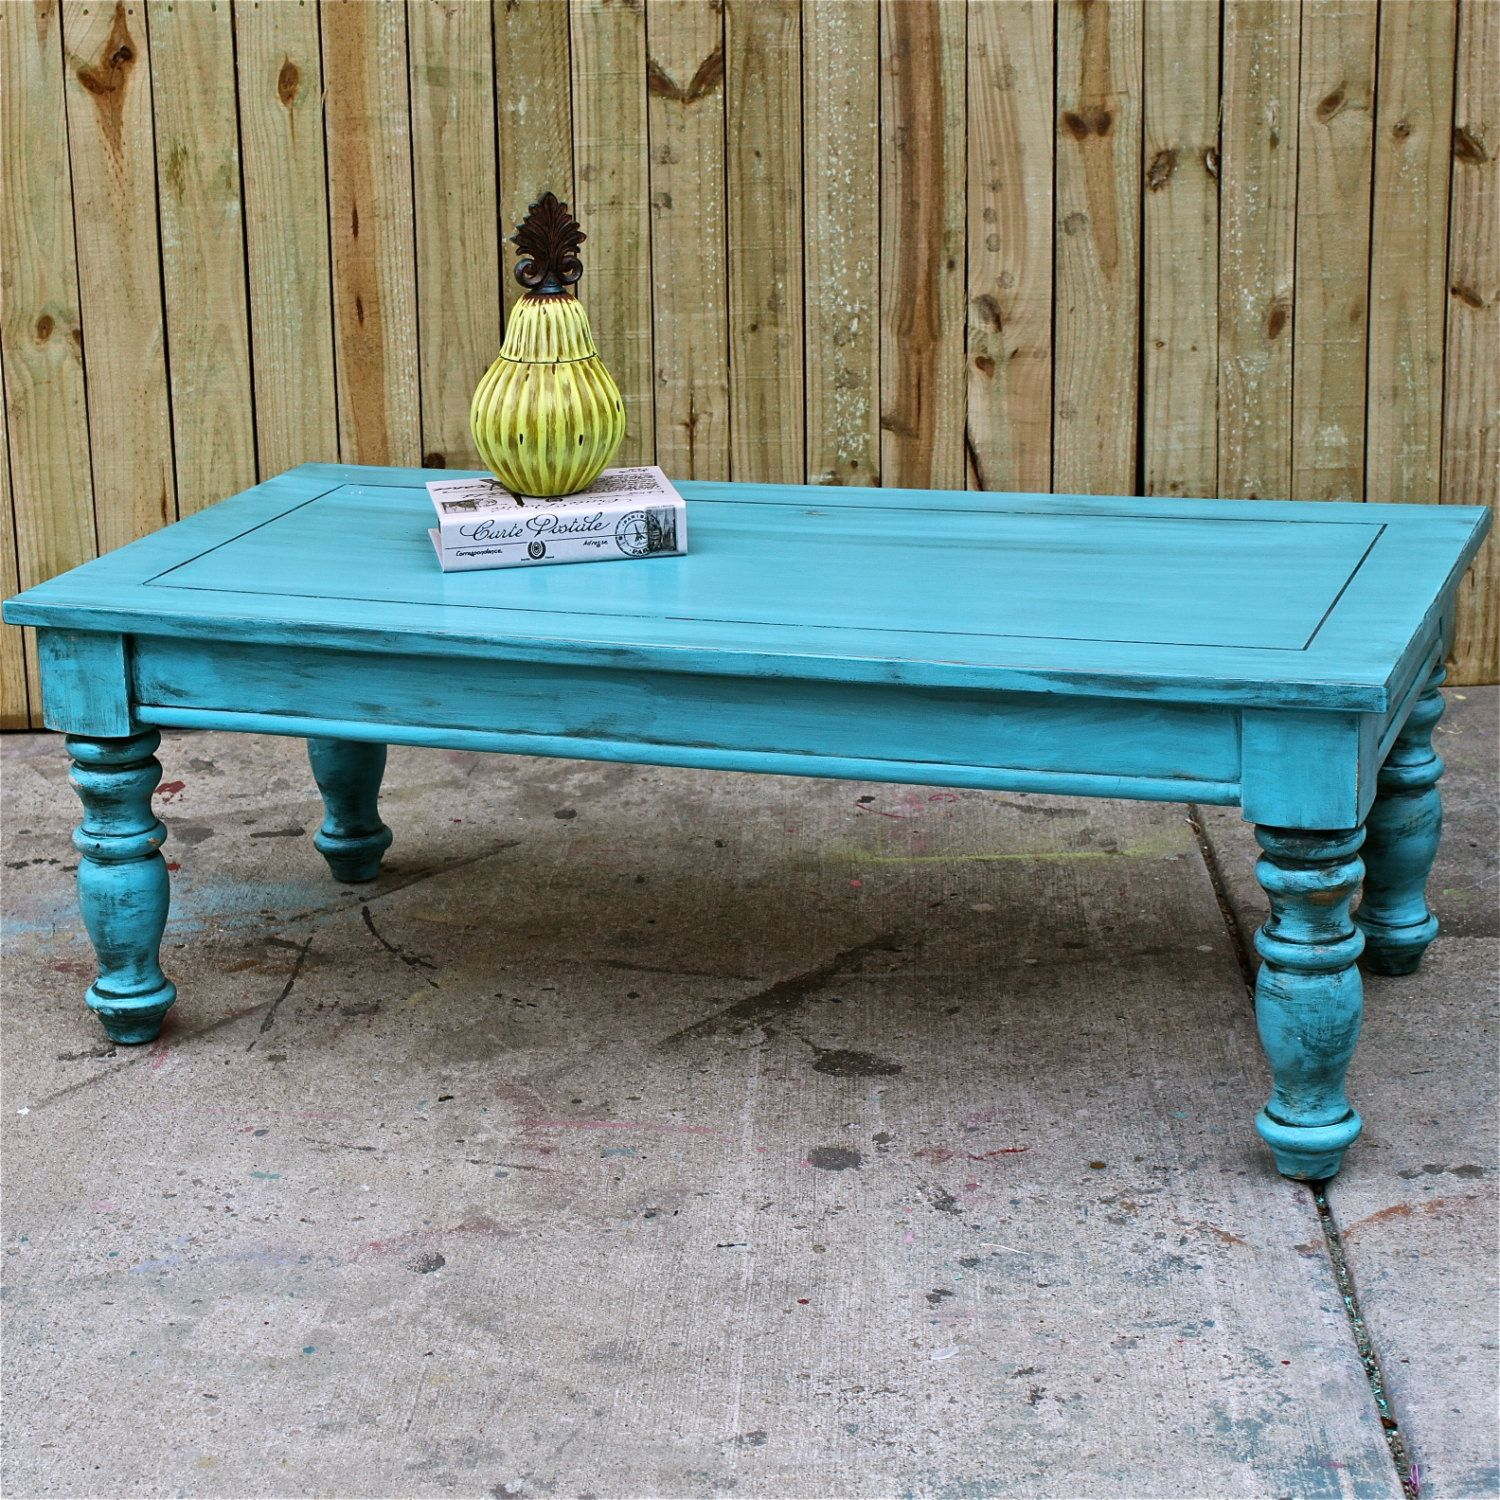 Shabby Chic Vintage Couchtisch Bayside Blue Coffee Table Table Vintage Shabby Chic